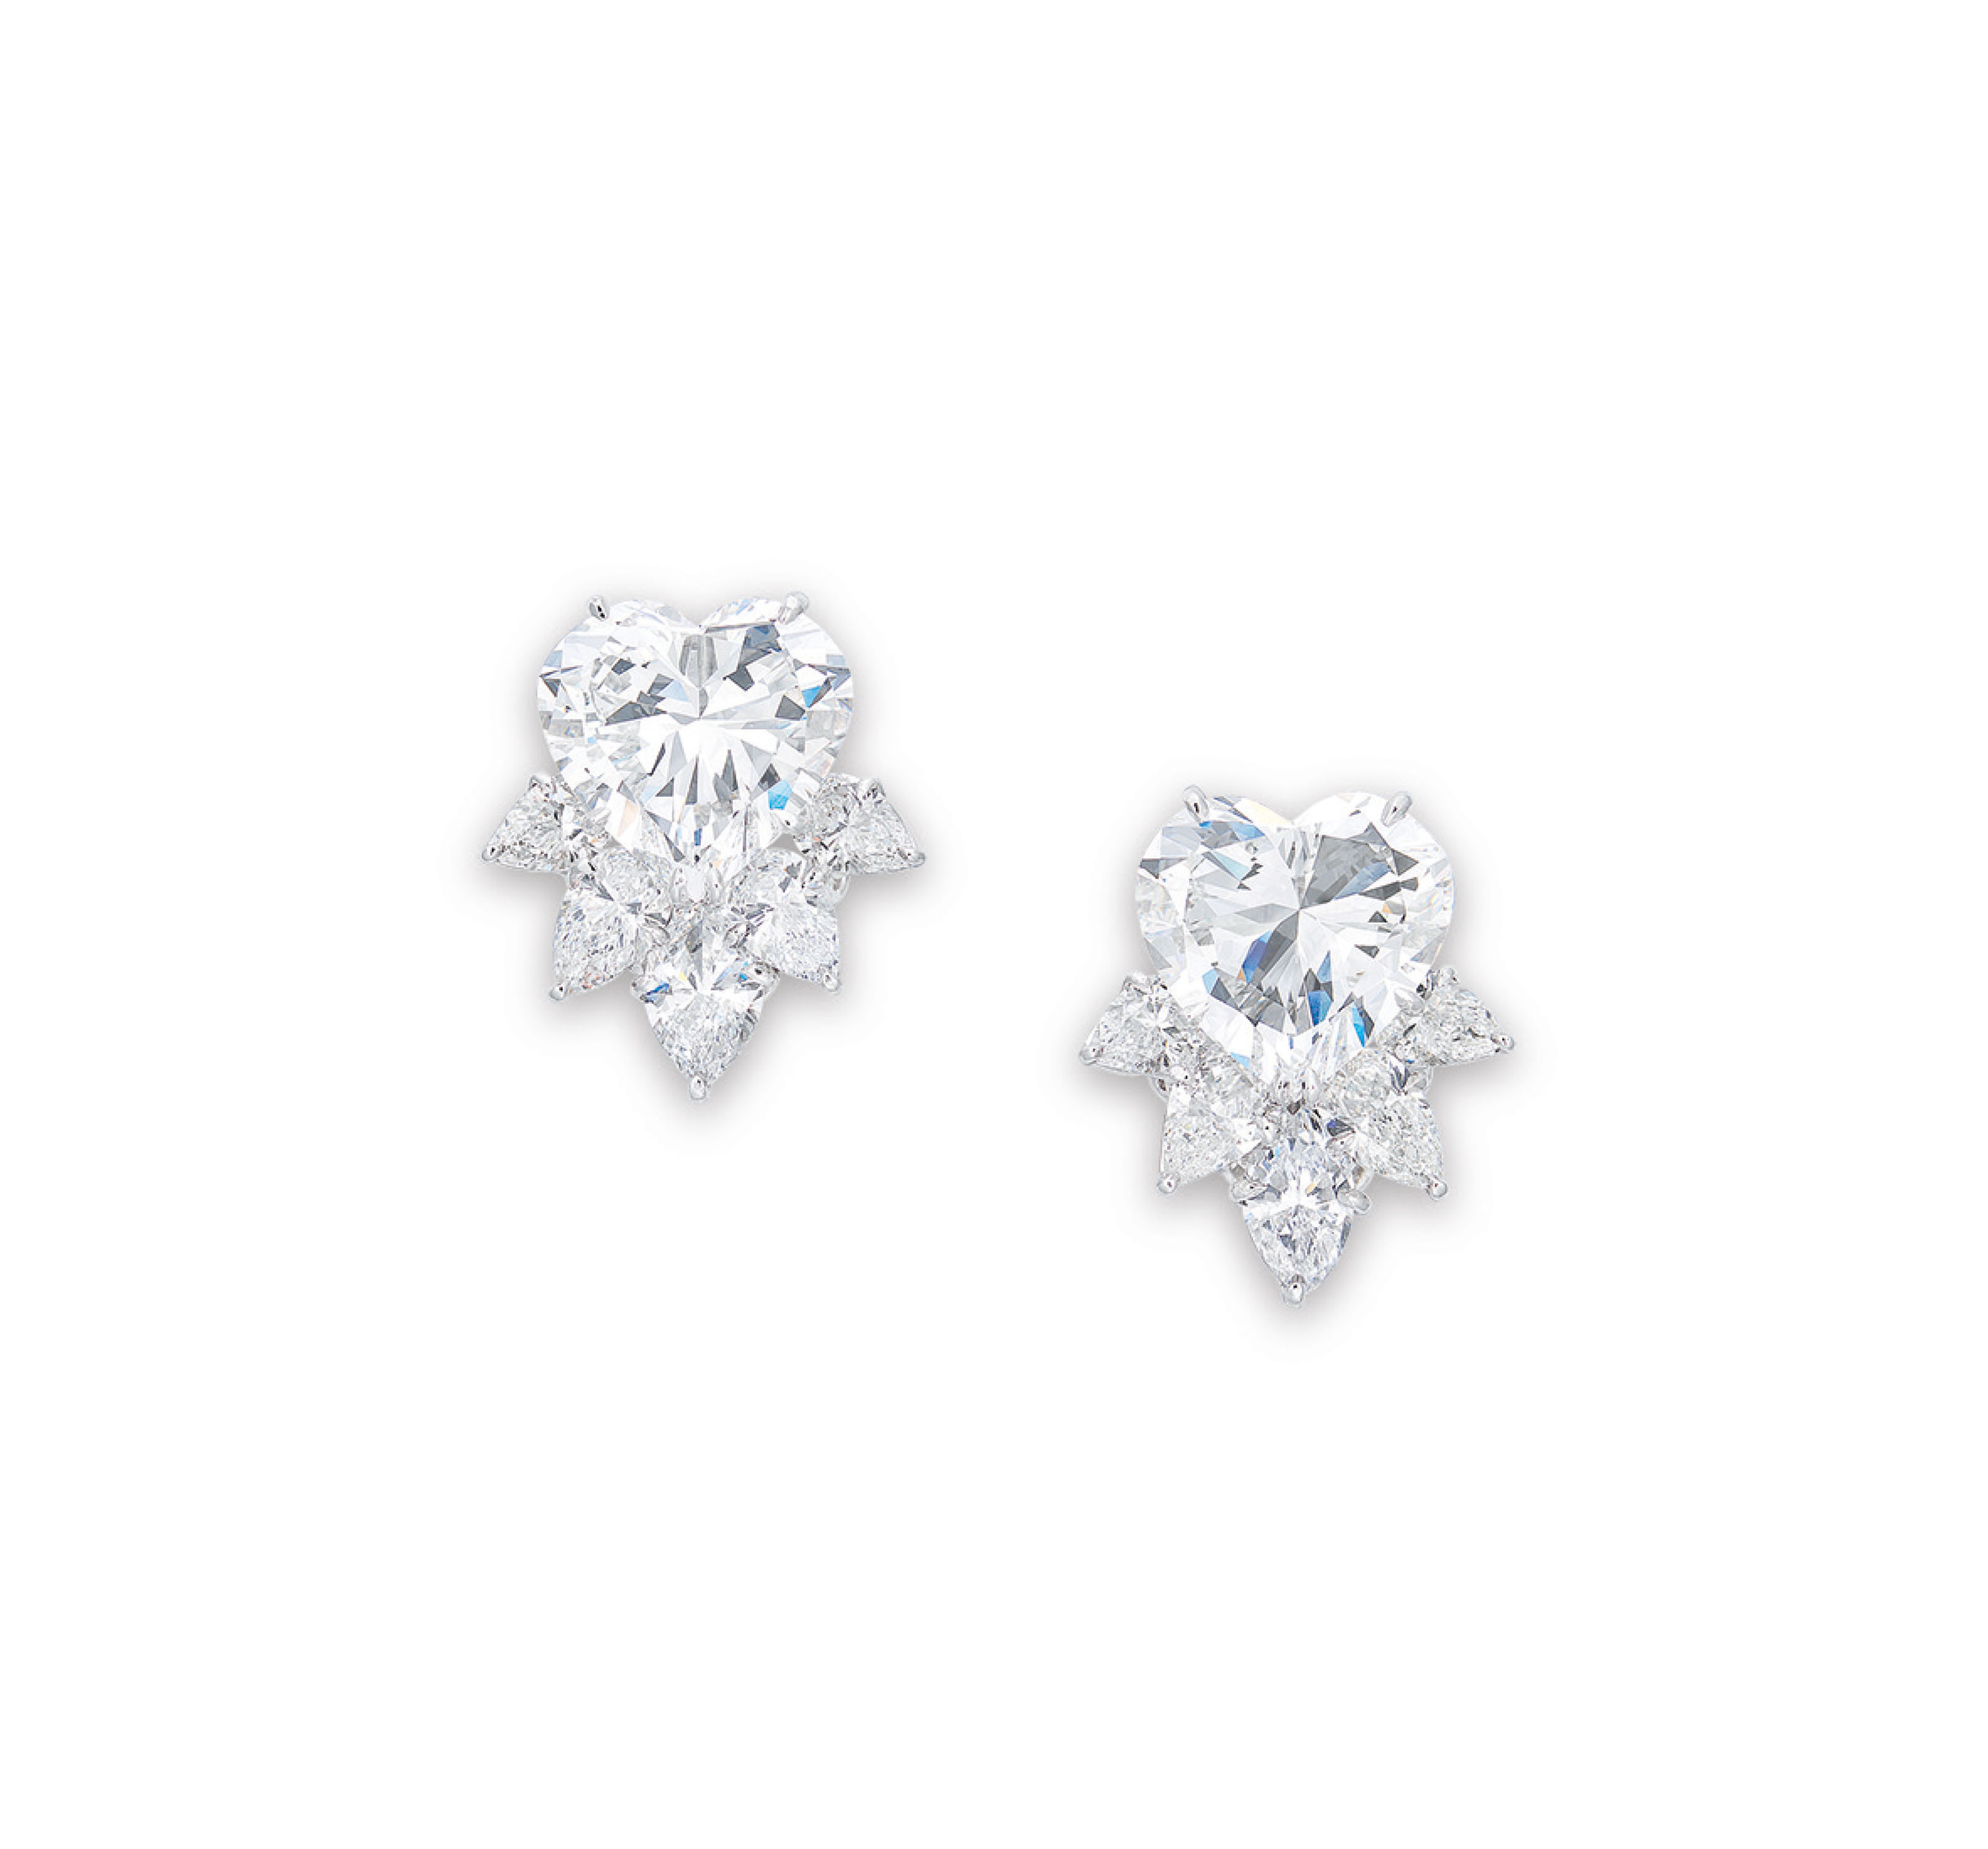 AN IMPORTANT PAIR OF DIAMOND EARRINGS, BY HARRY WINSTON